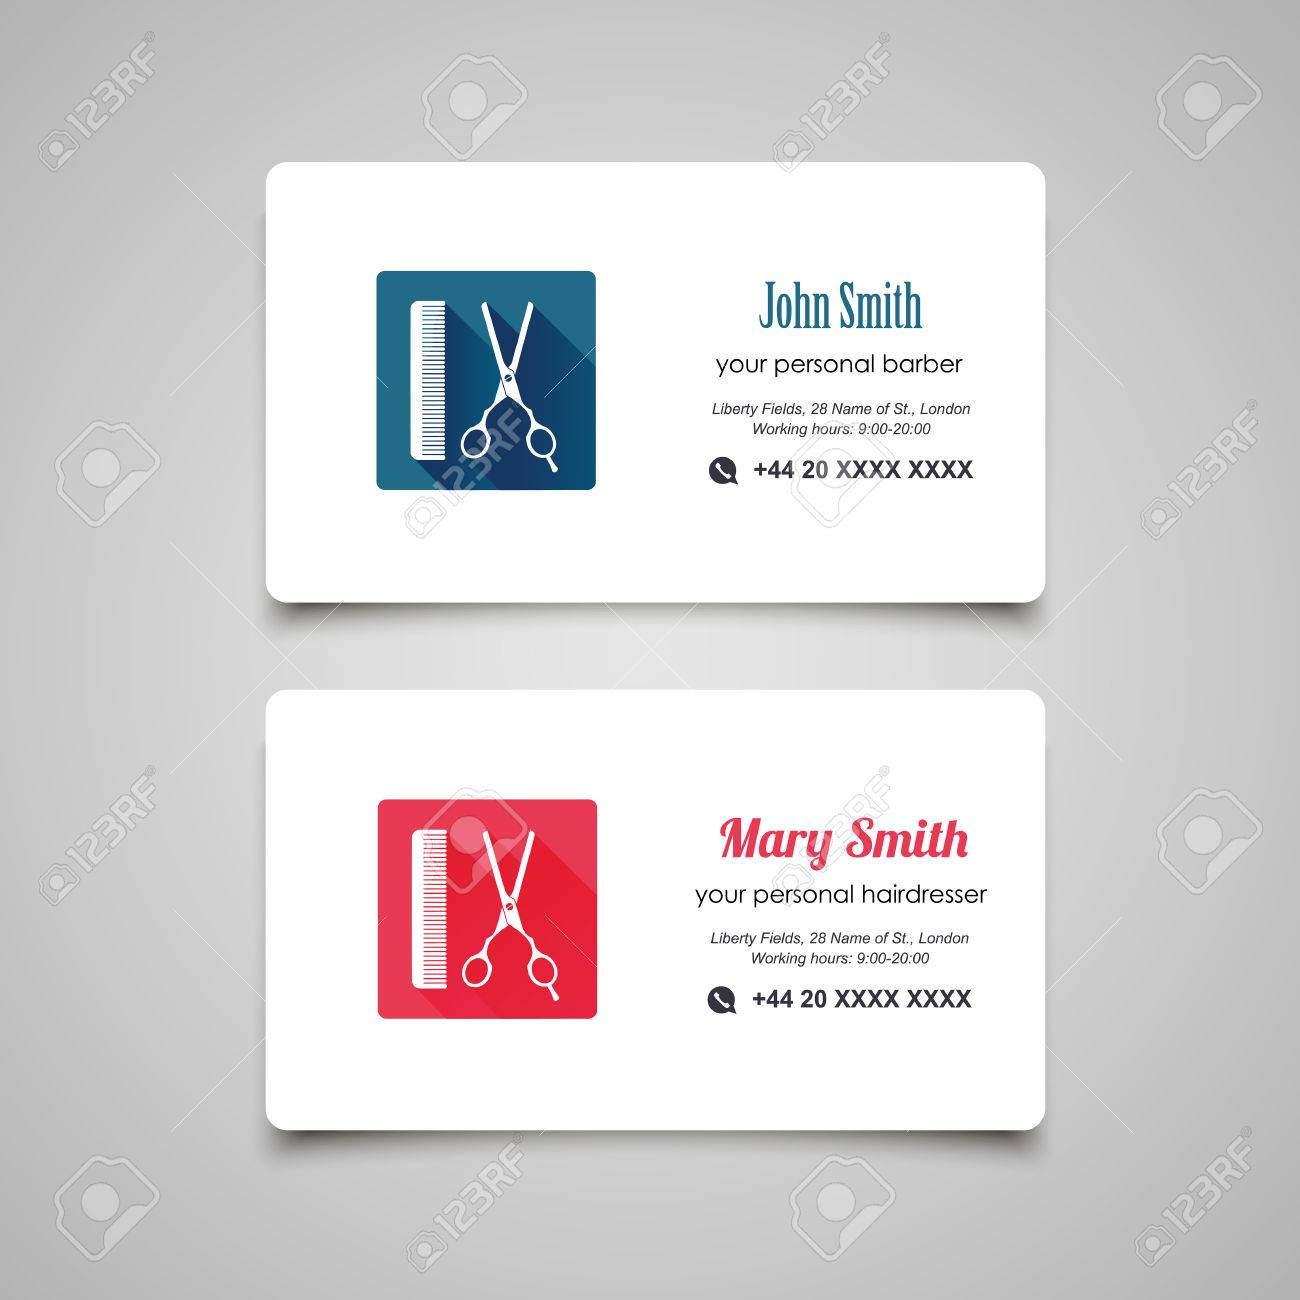 Hair salon barber shop business card design template royalty free hair salon barber shop business card design template imagens 39315881 reheart Choice Image